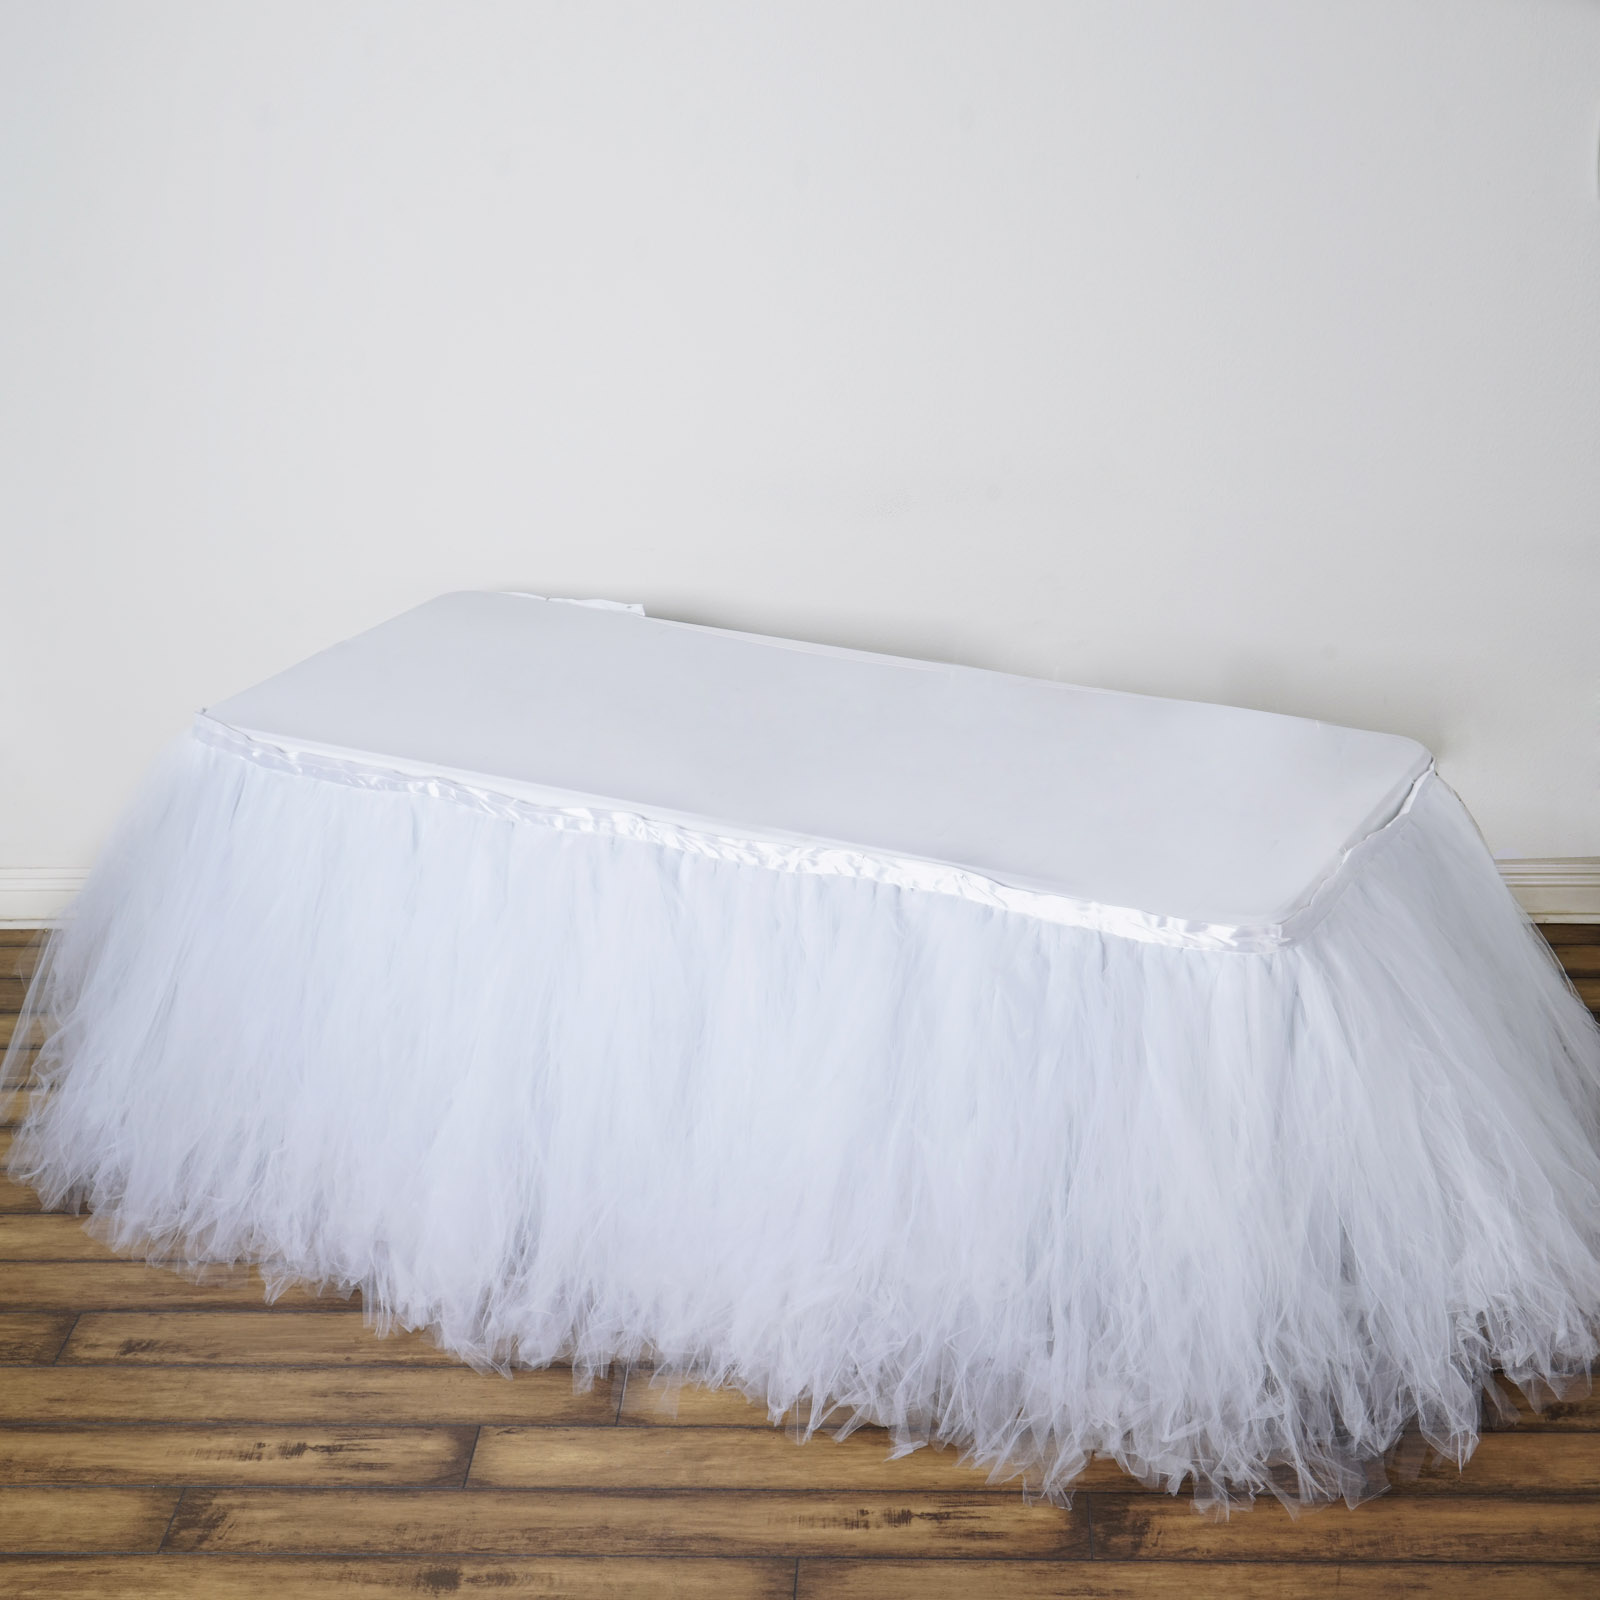 BalsaCircle Tutu Multi Layers Tulle Table Skirt Linens 3 sizes by